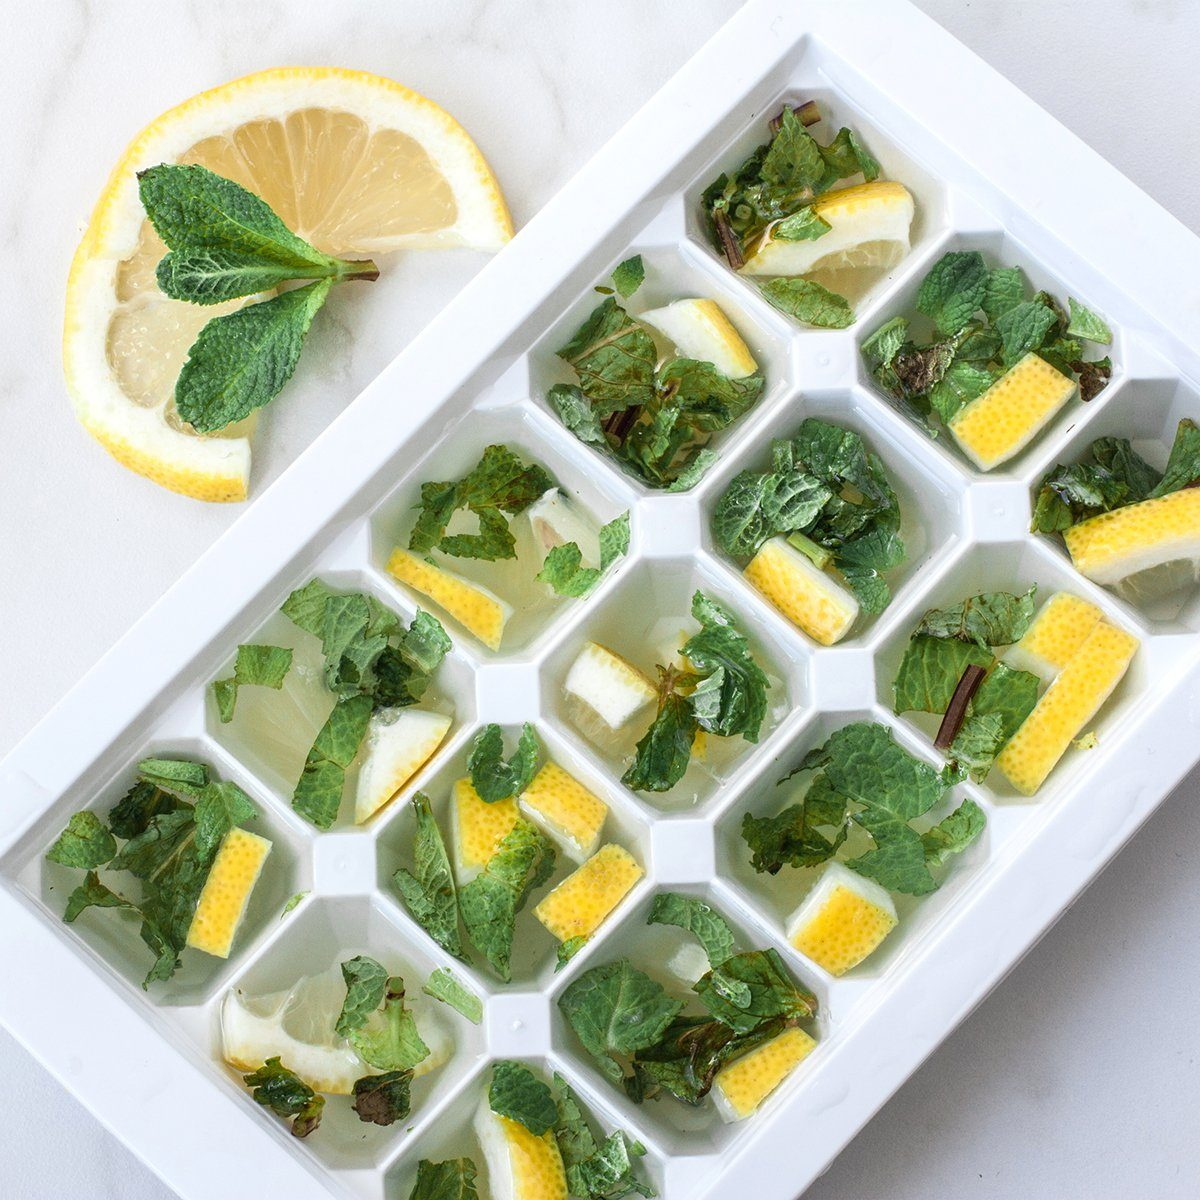 Cooking ice cubes with lemon and mint on marble background.